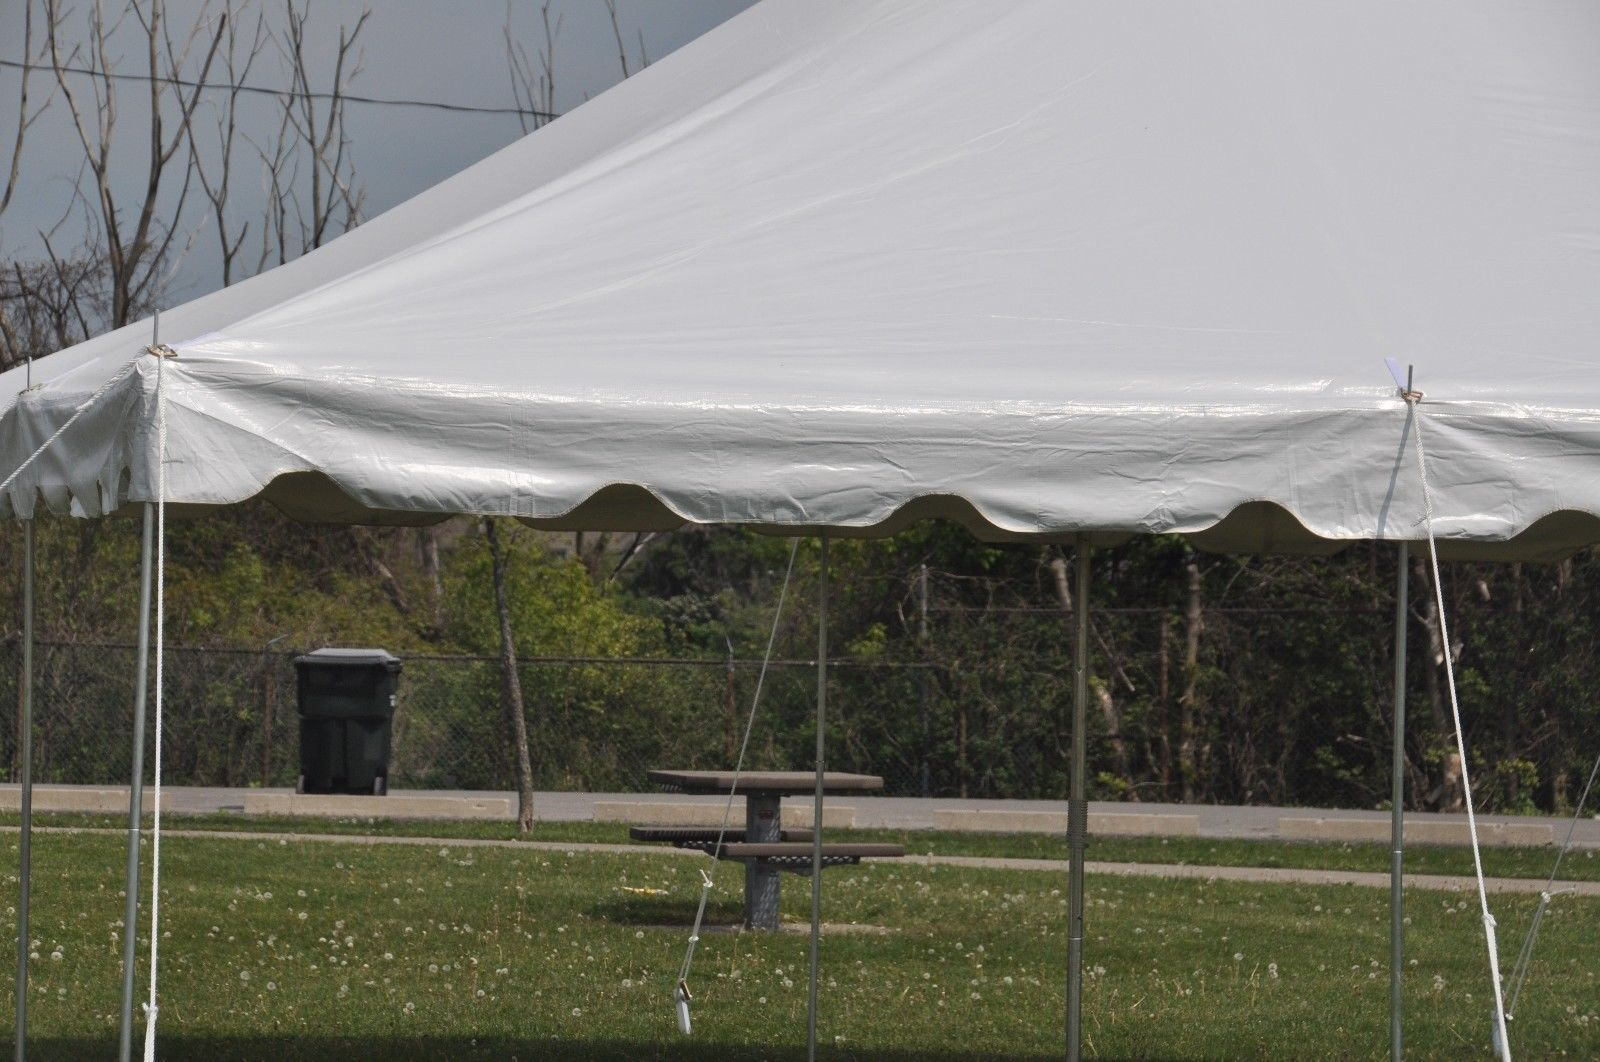 20 x 20 commercial grade party tent